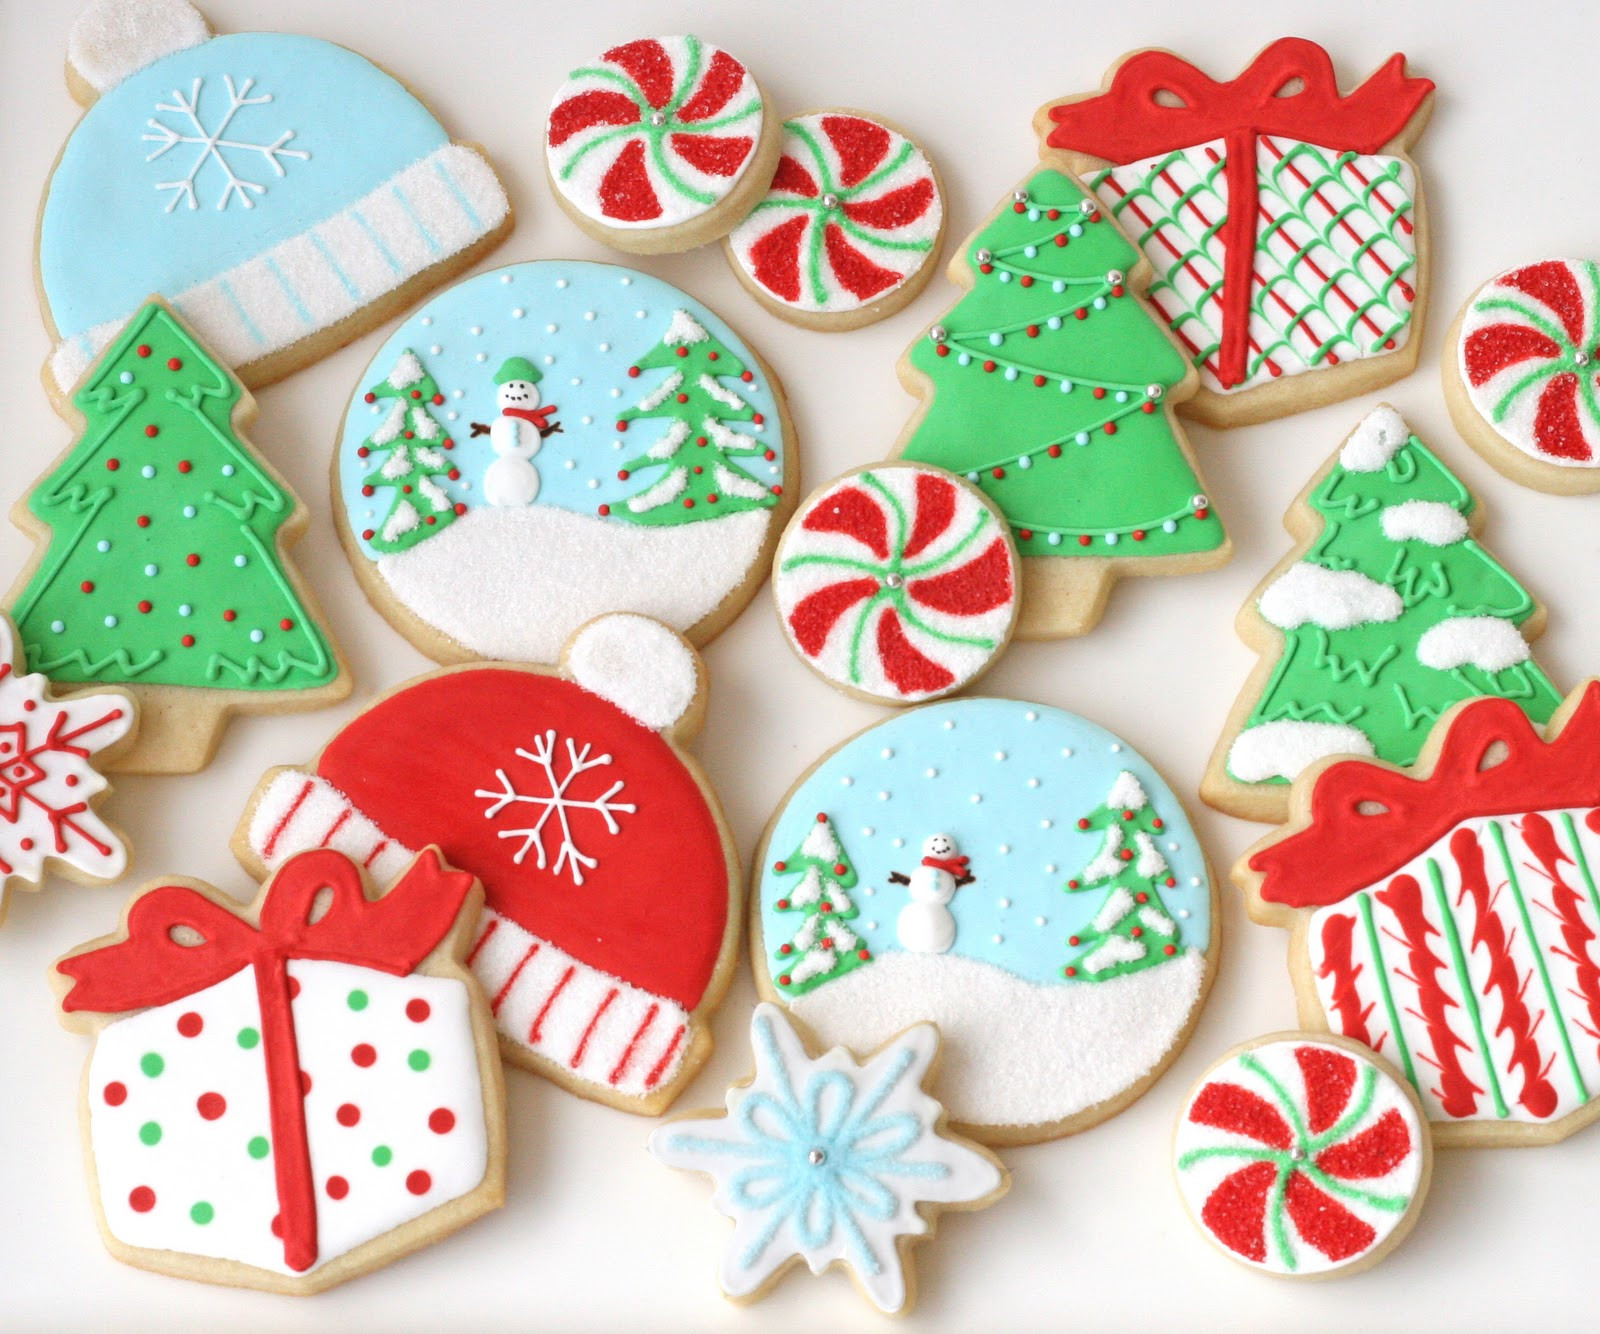 Decorating Christmas Cookies  Christmas Cookies Galore – Glorious Treats